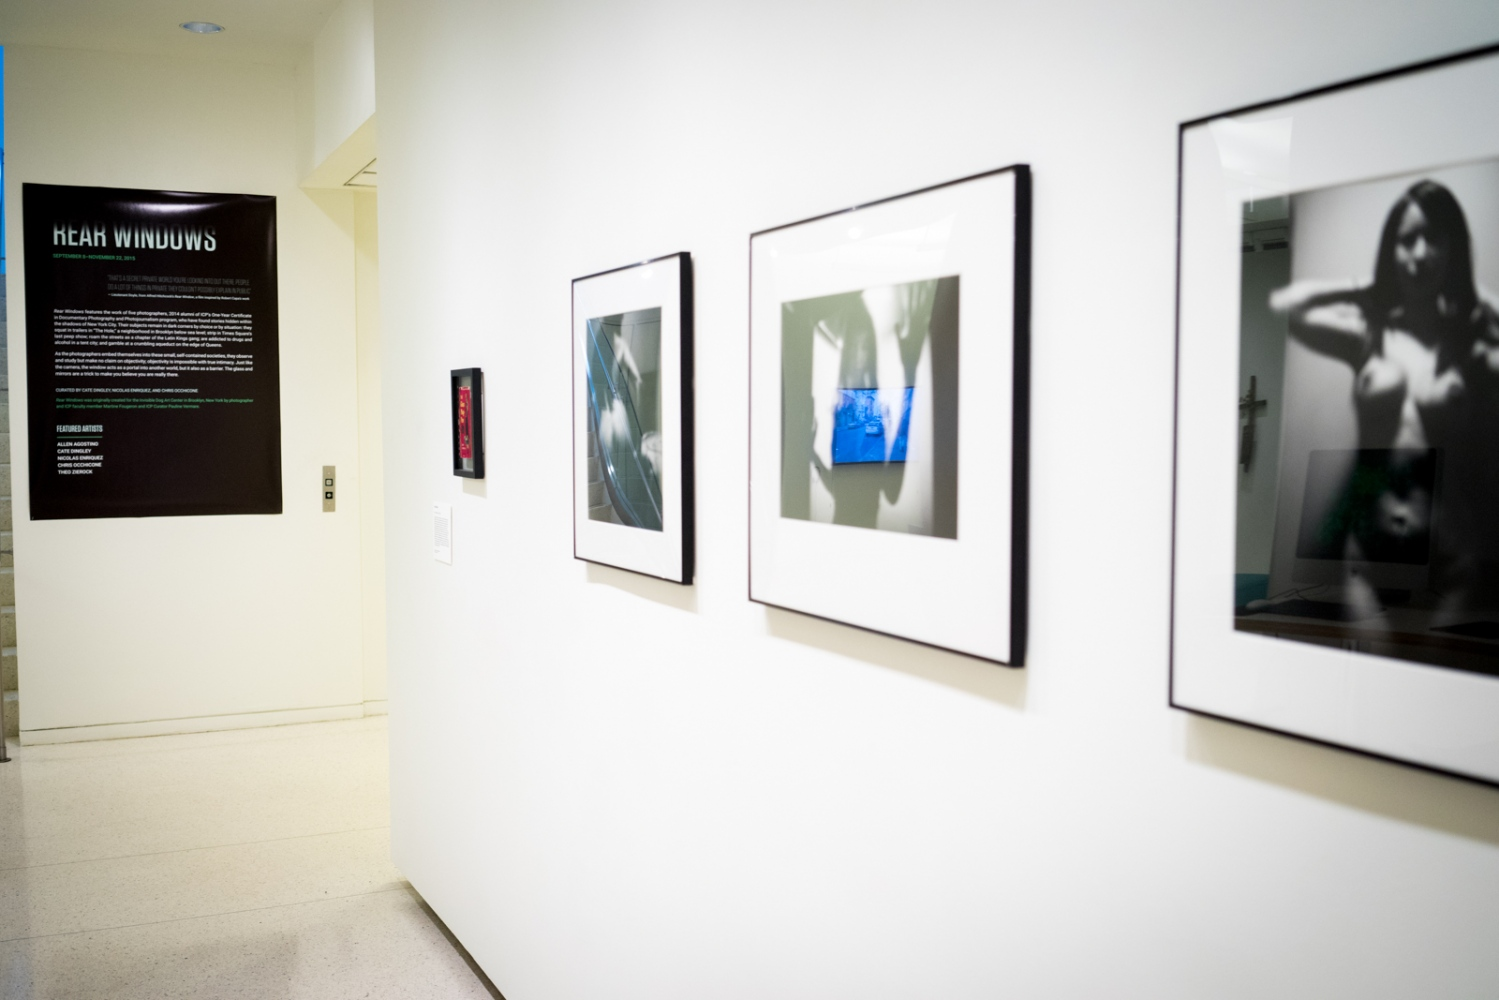 """Rear Windows"" at International Center of Photography, New York, NY 2015"